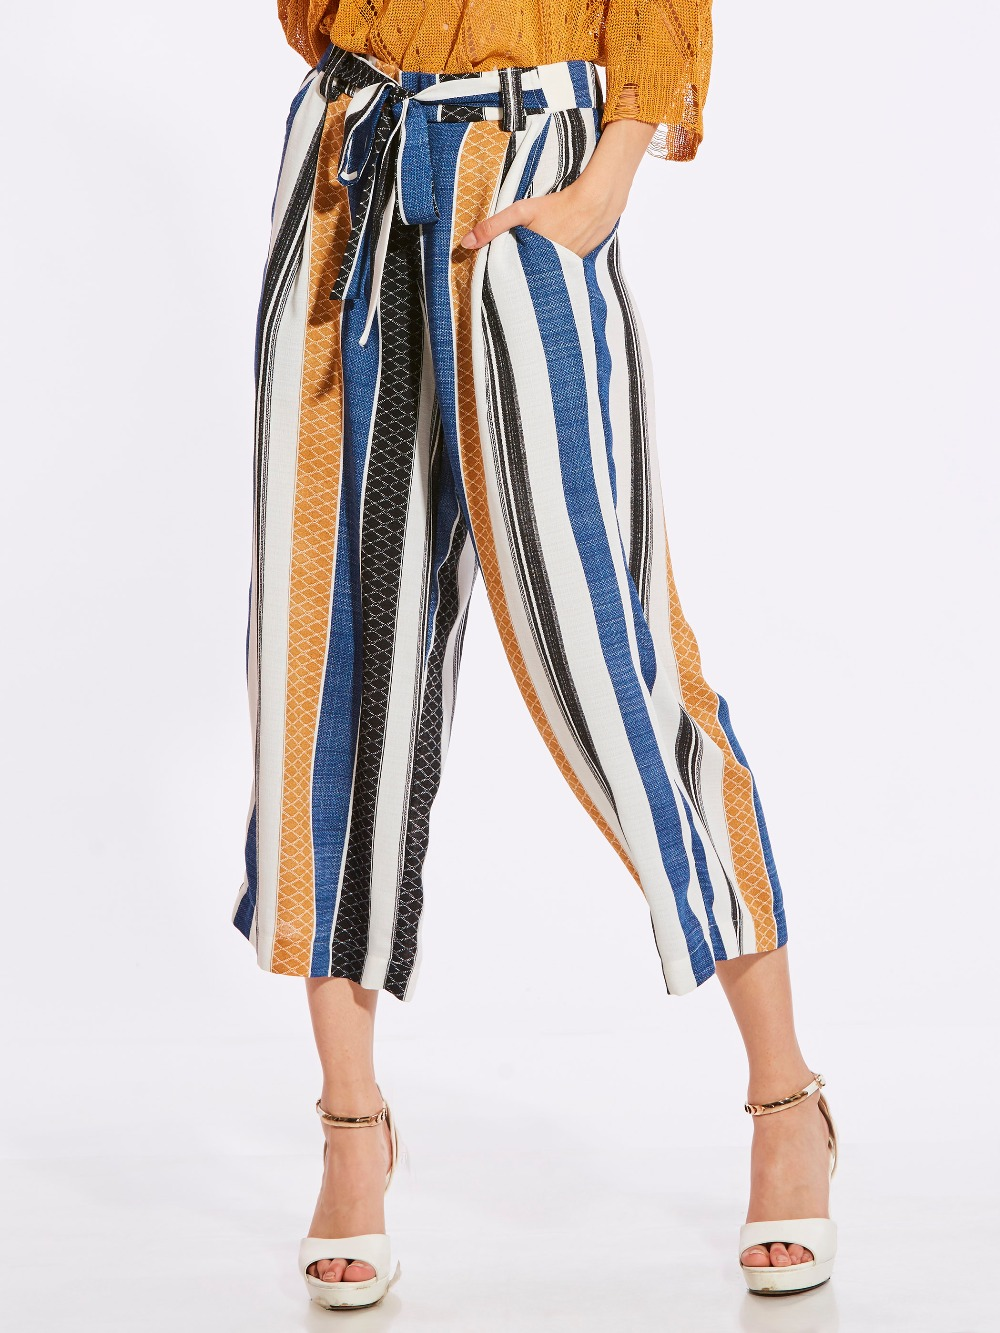 2018 Loose Trousers Women Trousers Elegant Brand lace up bow Womens Trousers Vertical Striped High Waist Wide Leg Pants